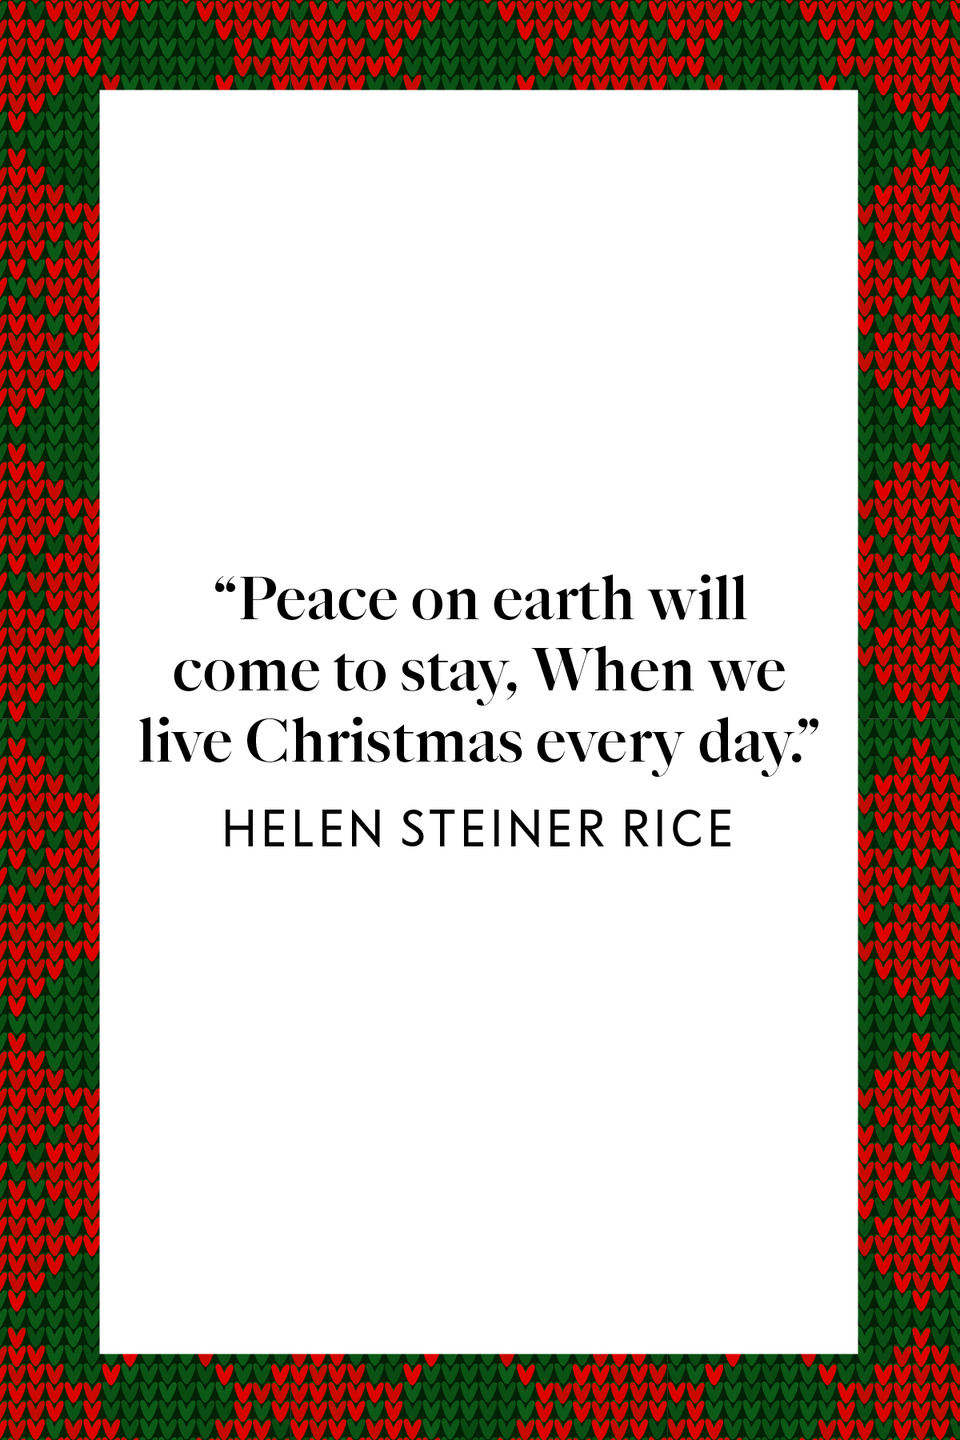 "<p>In the book <em><a href=""https://www.amazon.com/Helen-Steiner-Rice-Healing-Touch/dp/0800717503?tag=syn-yahoo-20&ascsubtag=%5Bartid%7C10072.g.34536312%5Bsrc%7Cyahoo-us"" rel=""nofollow noopener"" target=""_blank"" data-ylk=""slk:Helen Steiner Rice - The Healing Touch: Poems, Letters and Life Stories"" class=""link rapid-noclick-resp"">Helen Steiner Rice - The Healing Touch: Poems, Letters and Life Stories</a></em> dedicated to Rice's writings on personal and inspirational healing, it says ""Peace on earth will come to stay, When we live Christmas every day.""</p>"